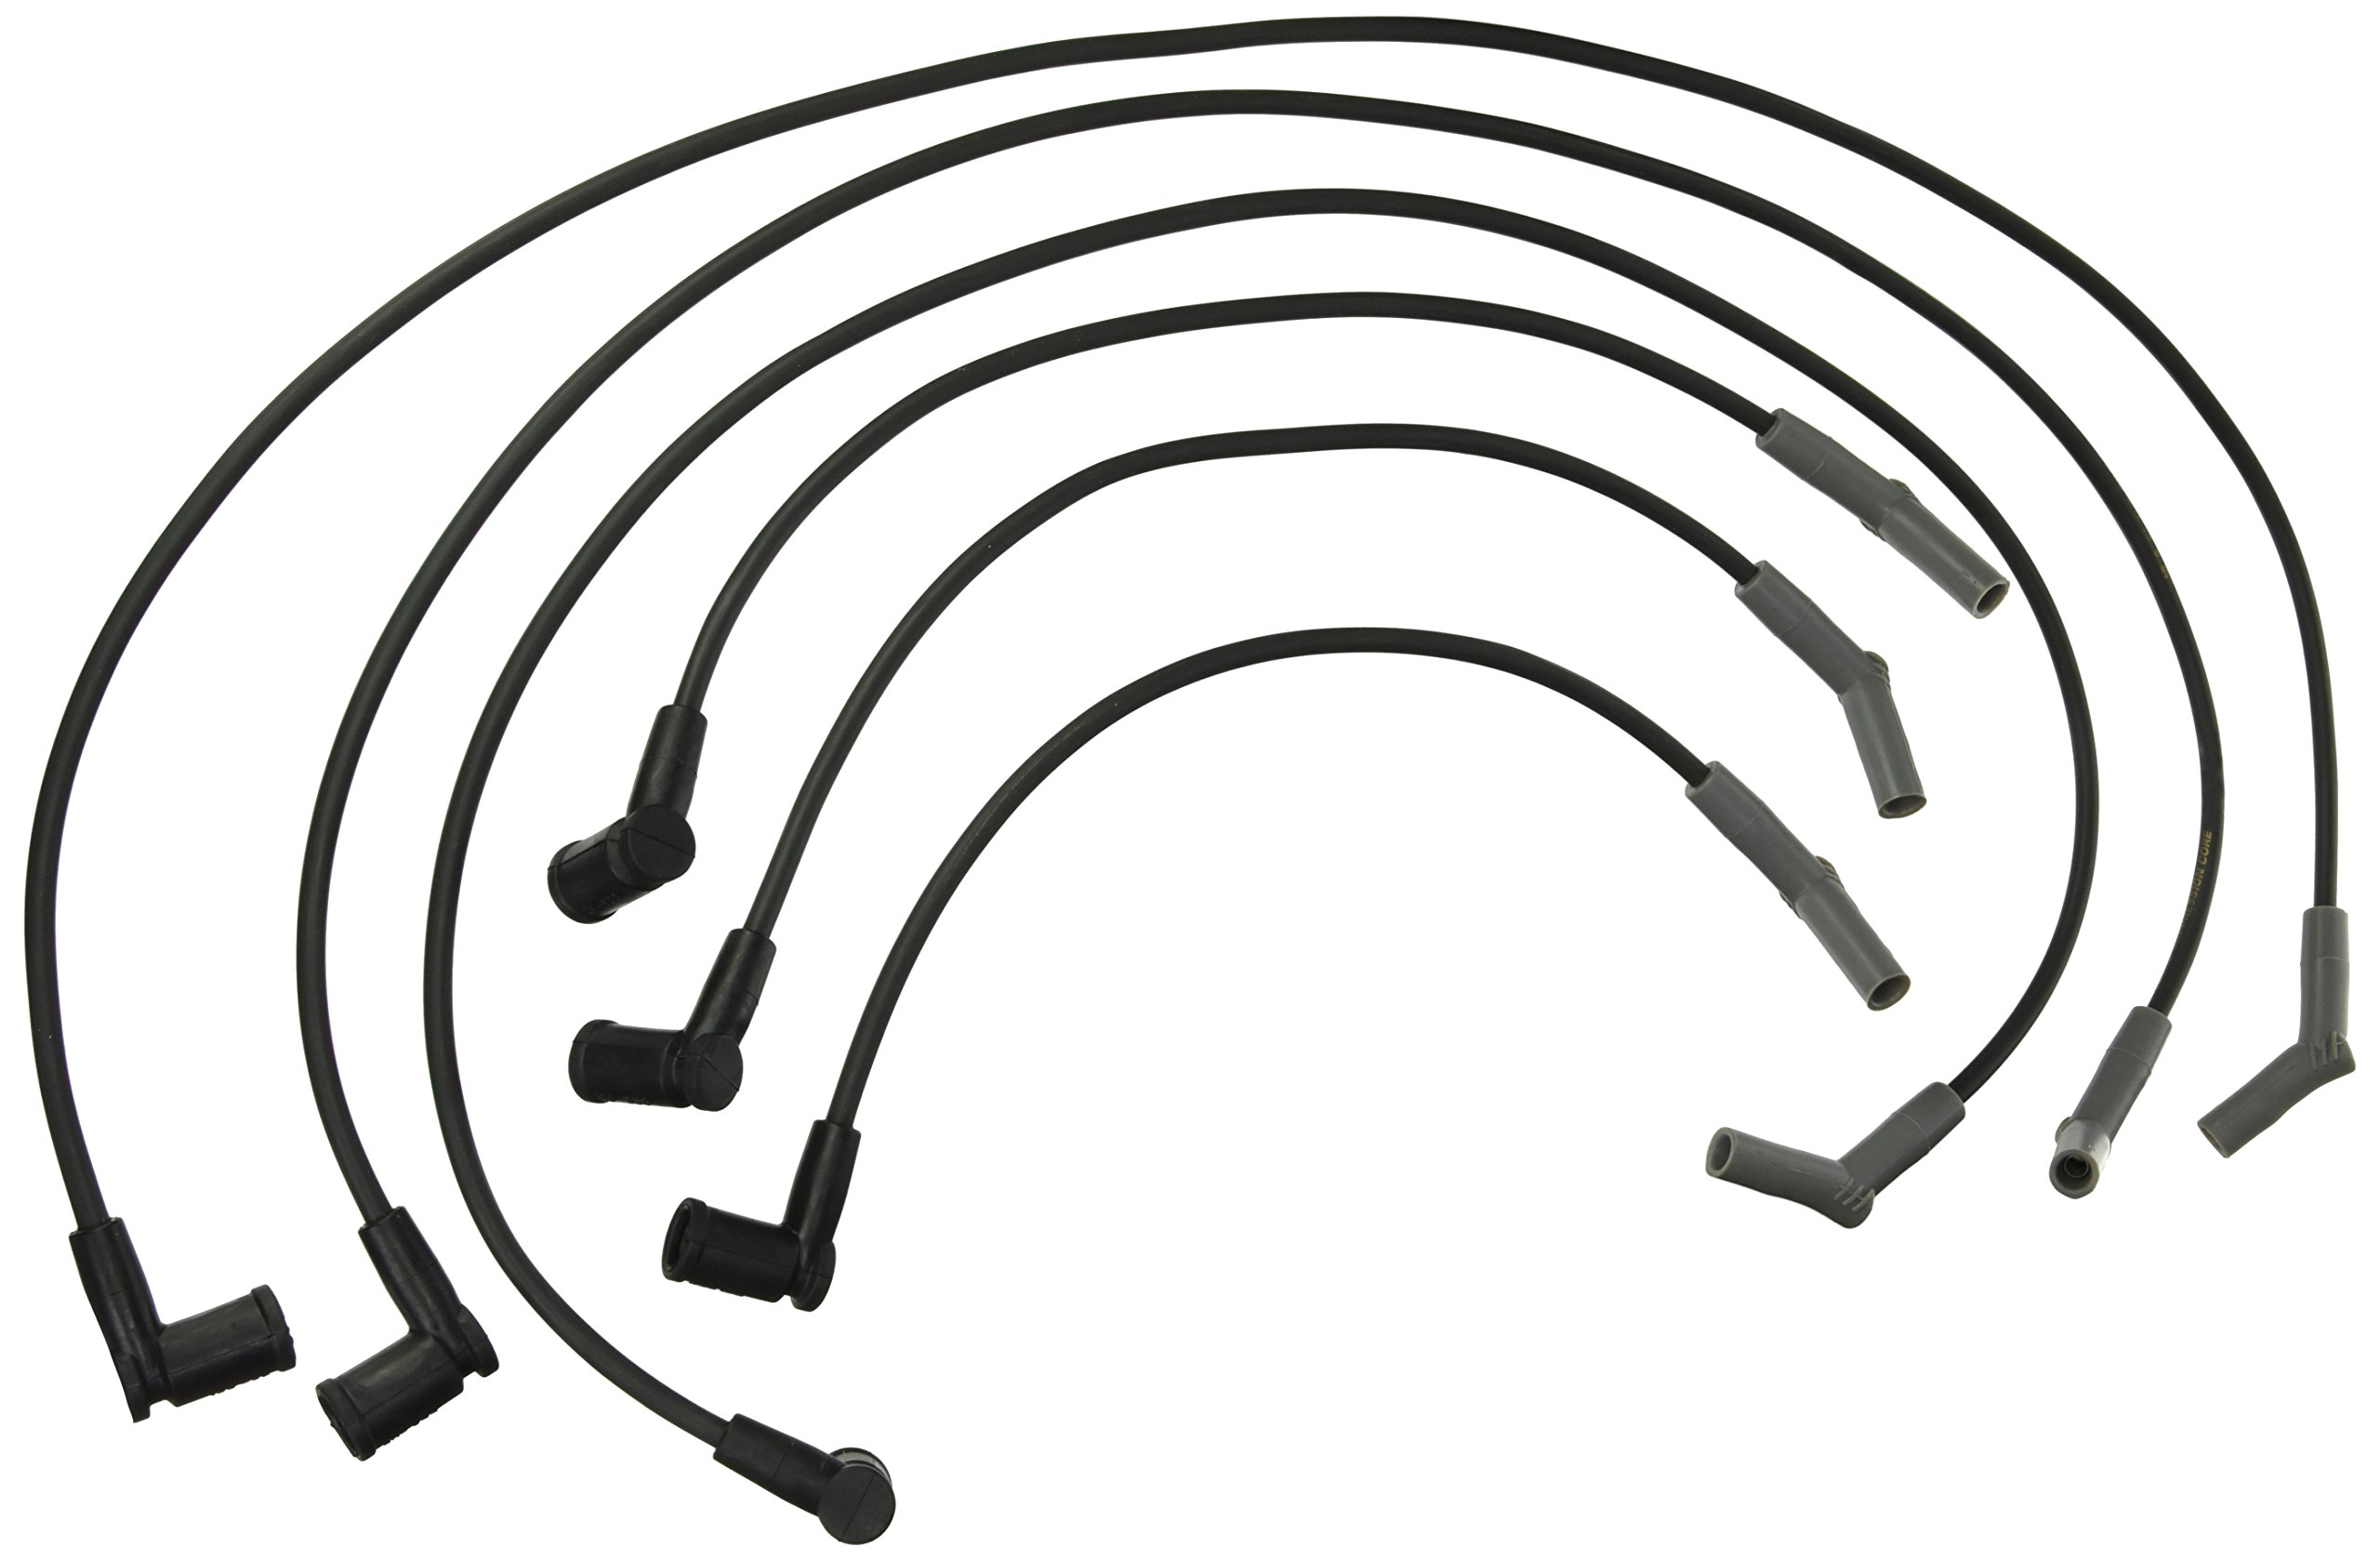 B&B Manufacturing S6-98230 Wire Set by B&B Manufacturing